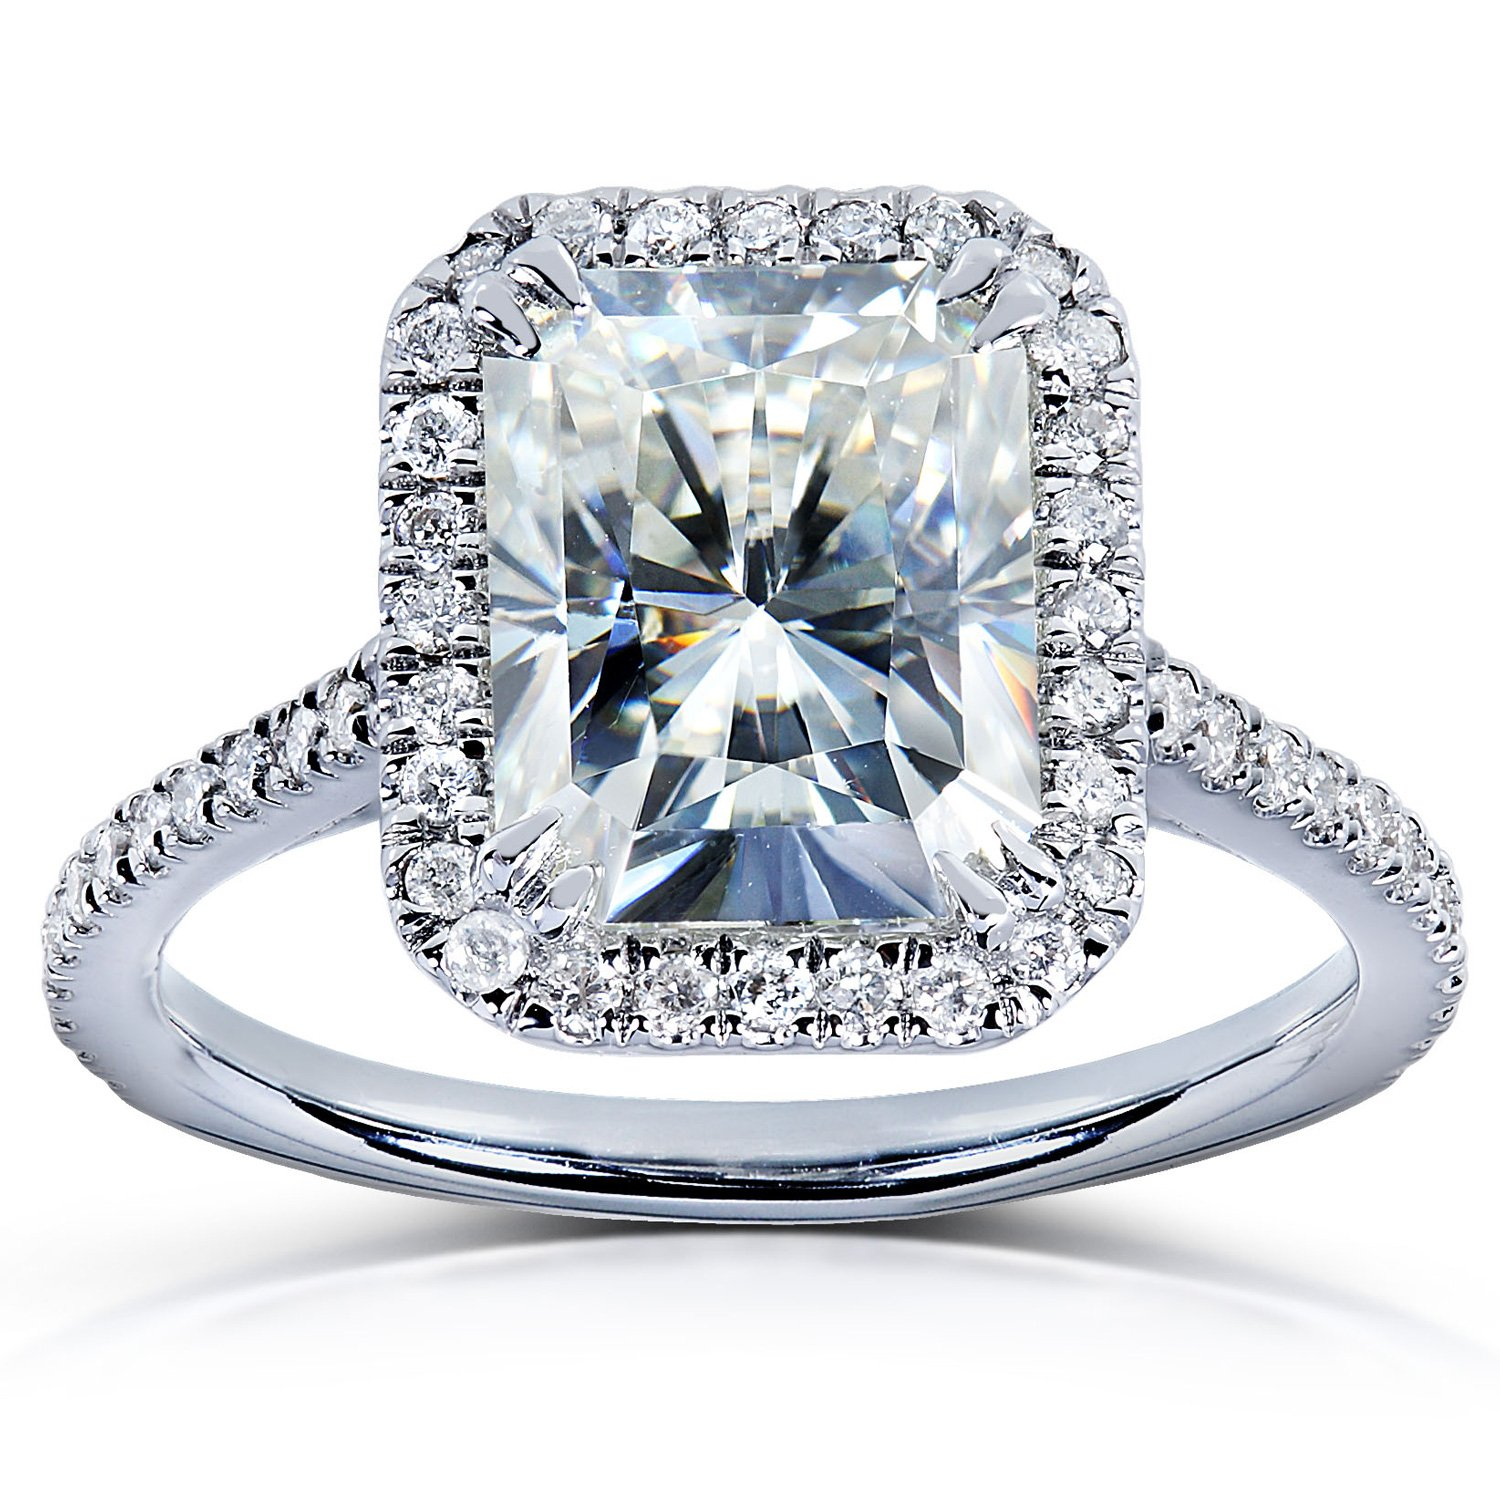 Near-Colorless (F-G) Moissanite Engagement Ring with Diamond 3 CTW 14k White Gold, Size 7